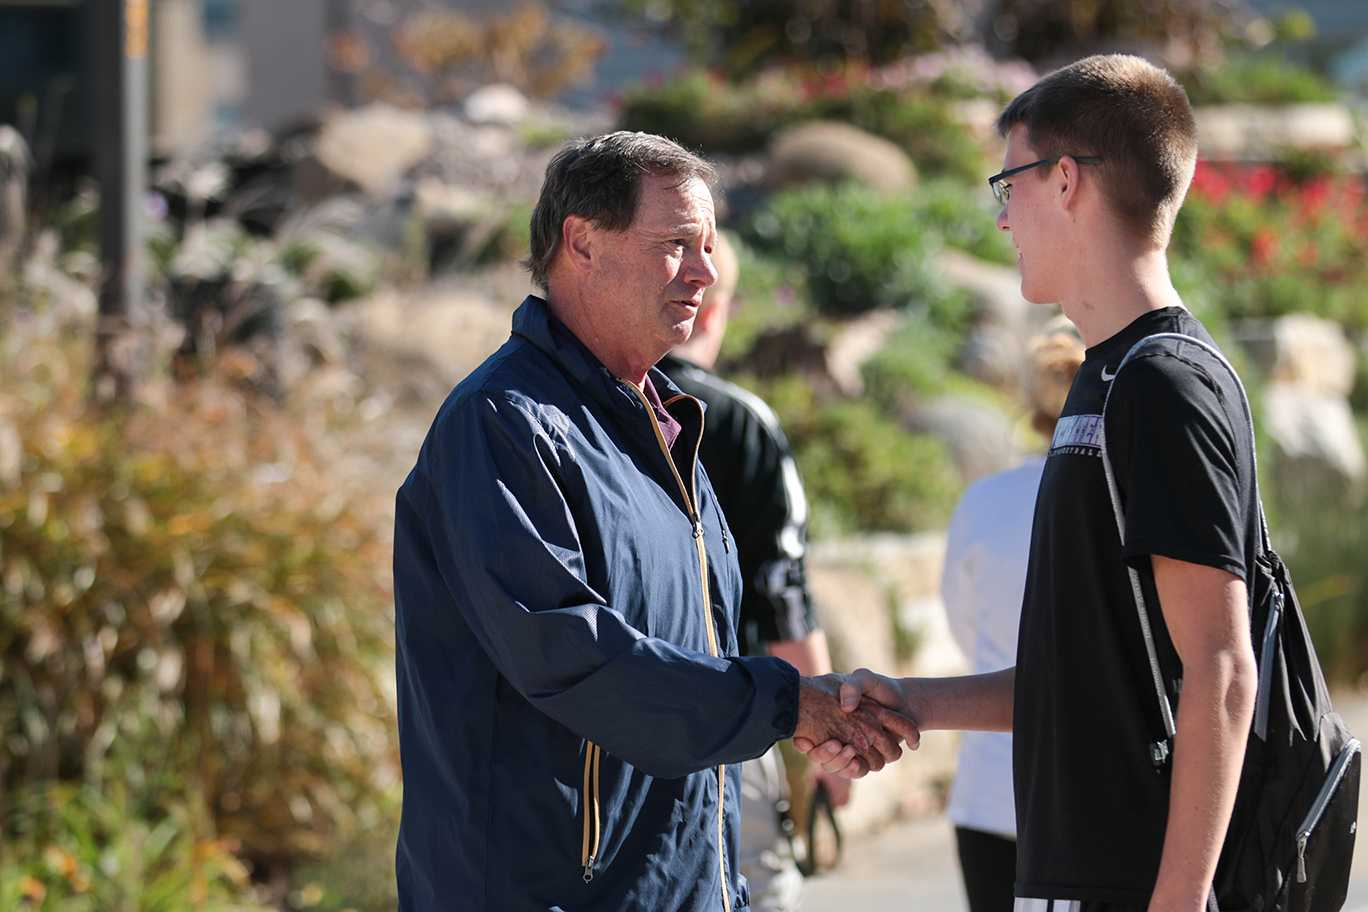 43rd District candidate Don Vruwink greets students on campus and urges them to vote for him in the local elections on Nov. 8. Vruwink defeated his opponent Allison Hetz, a University of Wisconsin-Whitewater Alumni